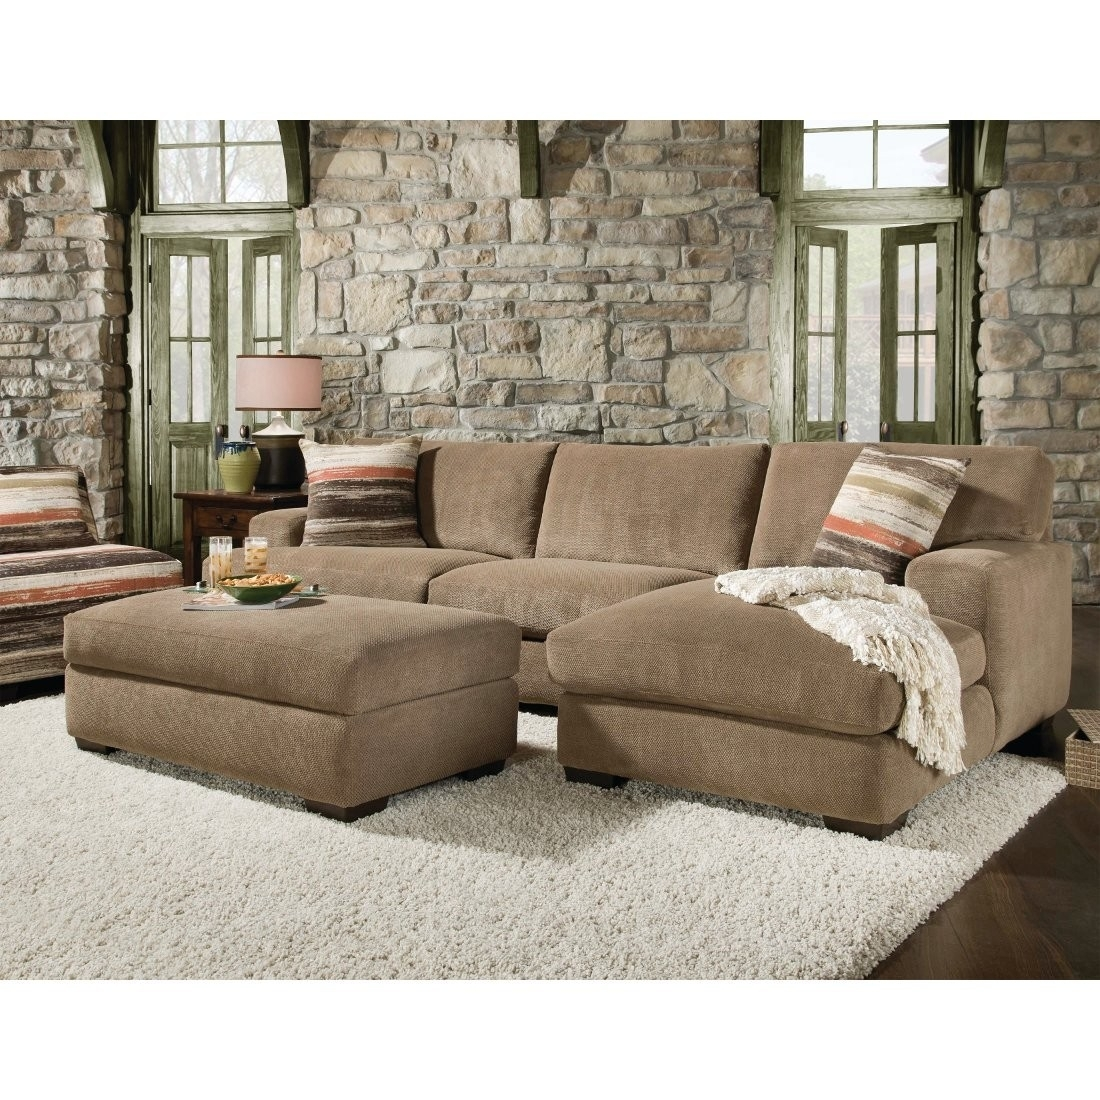 Cozy Sectional Sofa With Chaise And Ottoman 29 About Remodel Down In Down Filled Sectional Sofas  sc 1 st  Home Design Projects : down couch sectional - Sectionals, Sofas & Couches